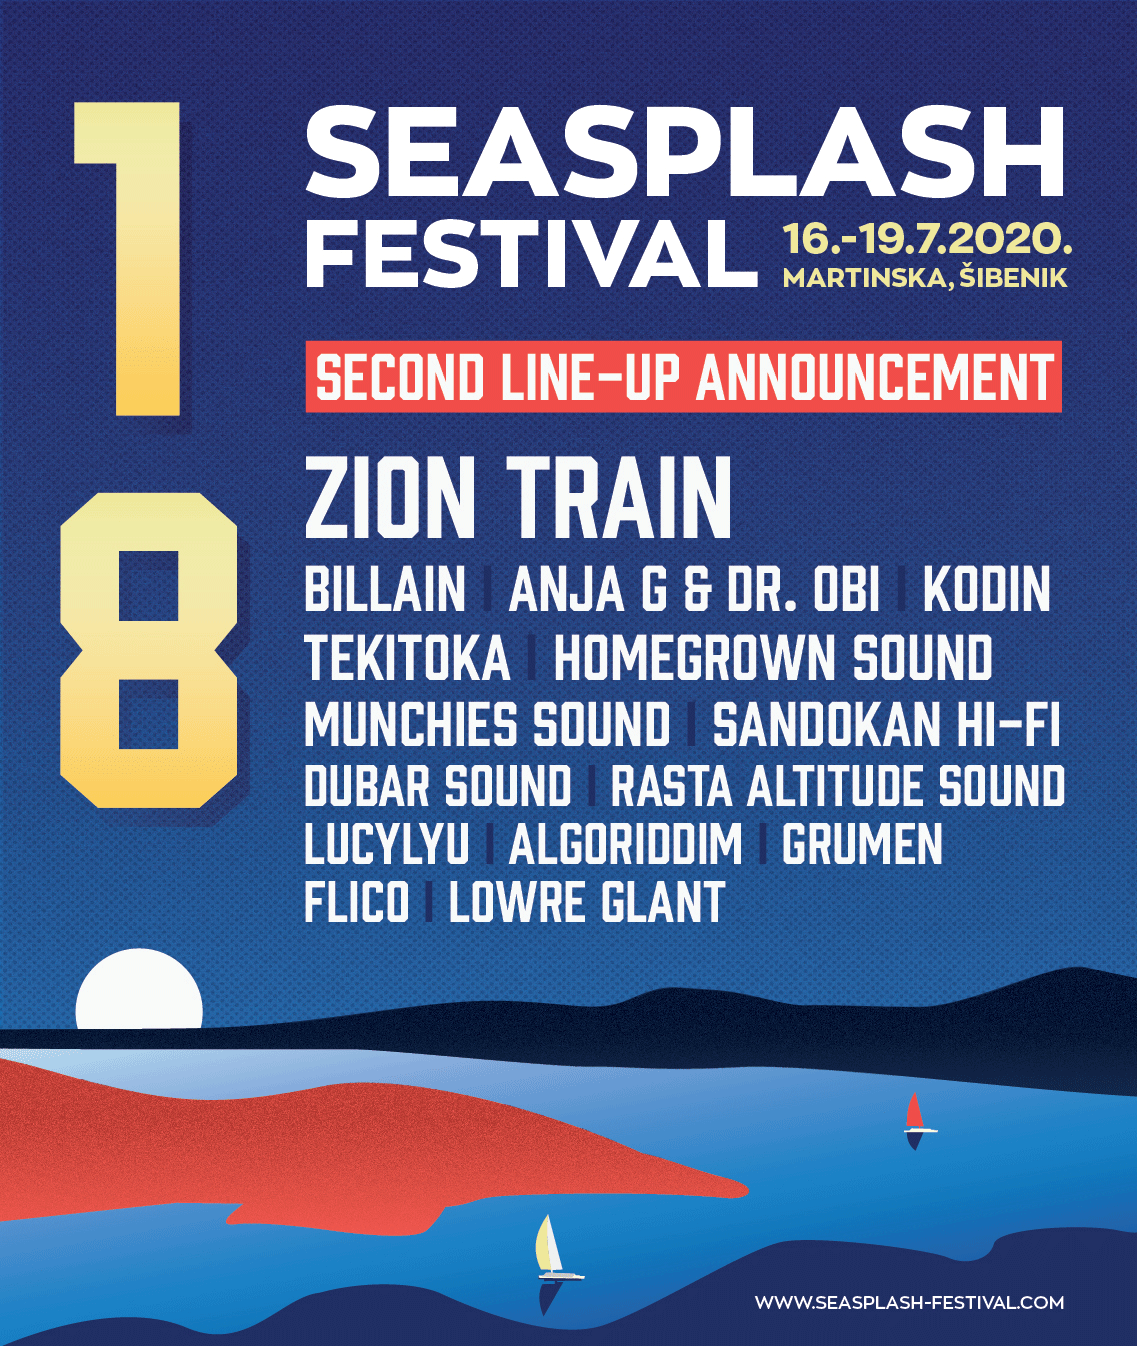 Seasplash 2020 - Second Line-Up Announcement